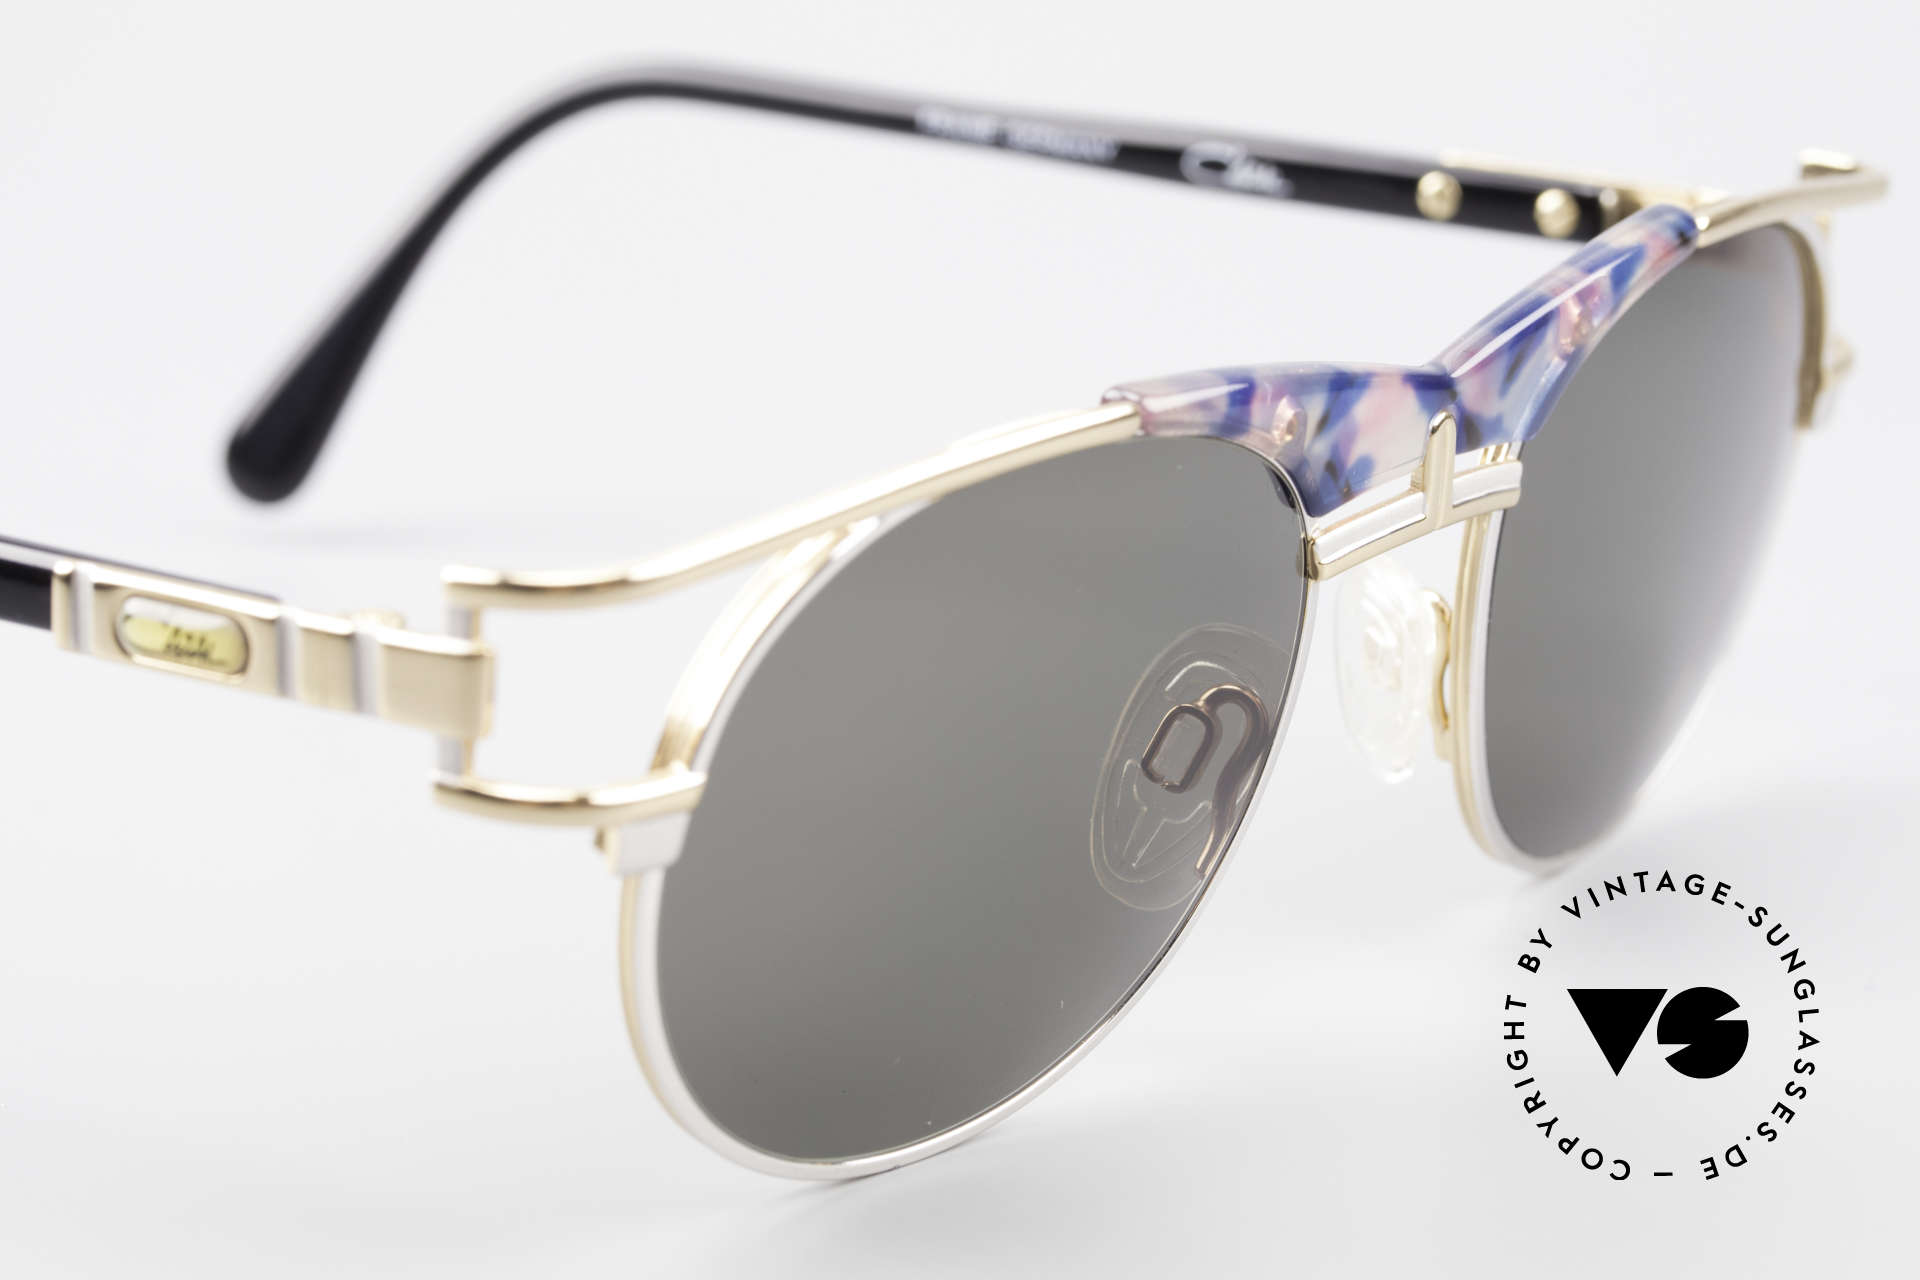 Cazal 244 Iconic Vintage Sunglasses 90's, NO RETRO shades, but a 25 years old ORIGINAL!, Made for Men and Women